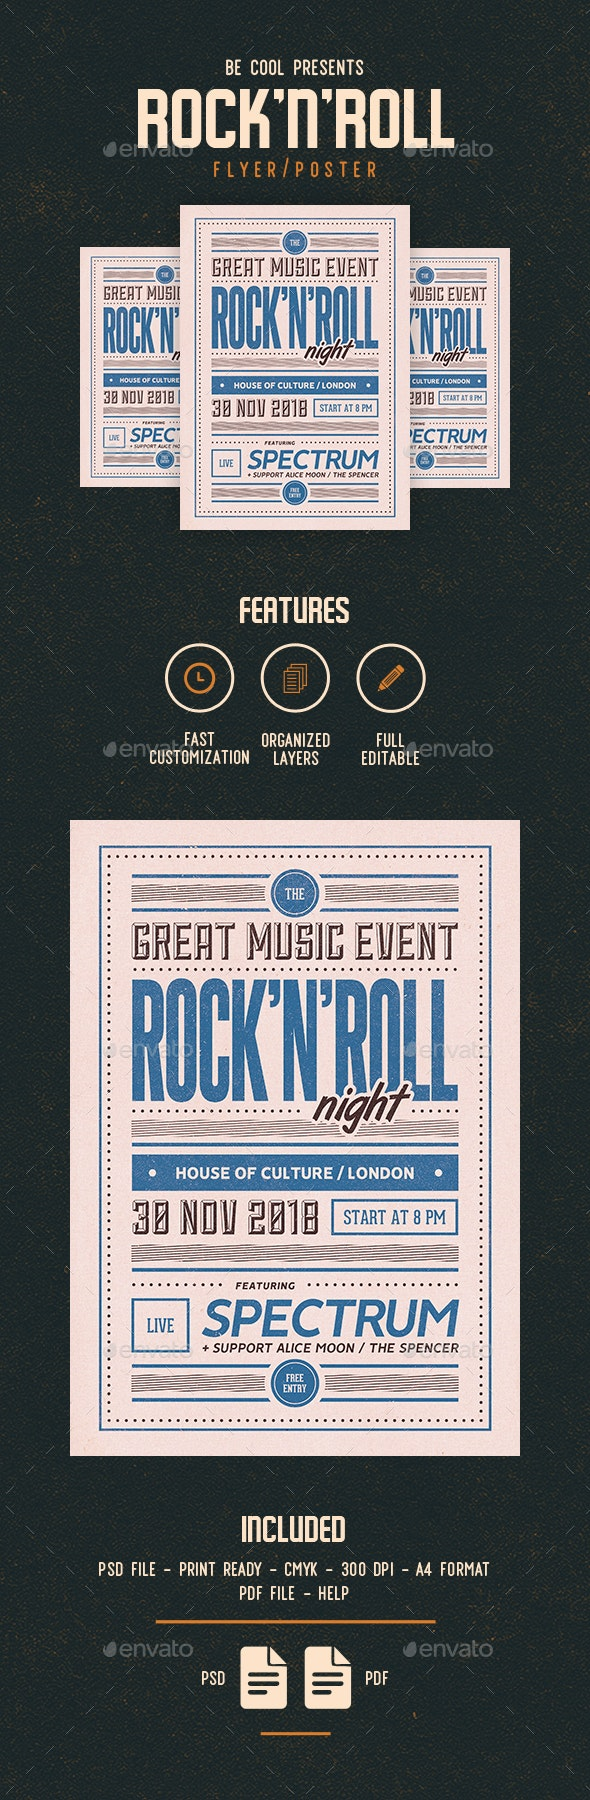 Rock'n'Roll Flyer/Poster - Concerts Events